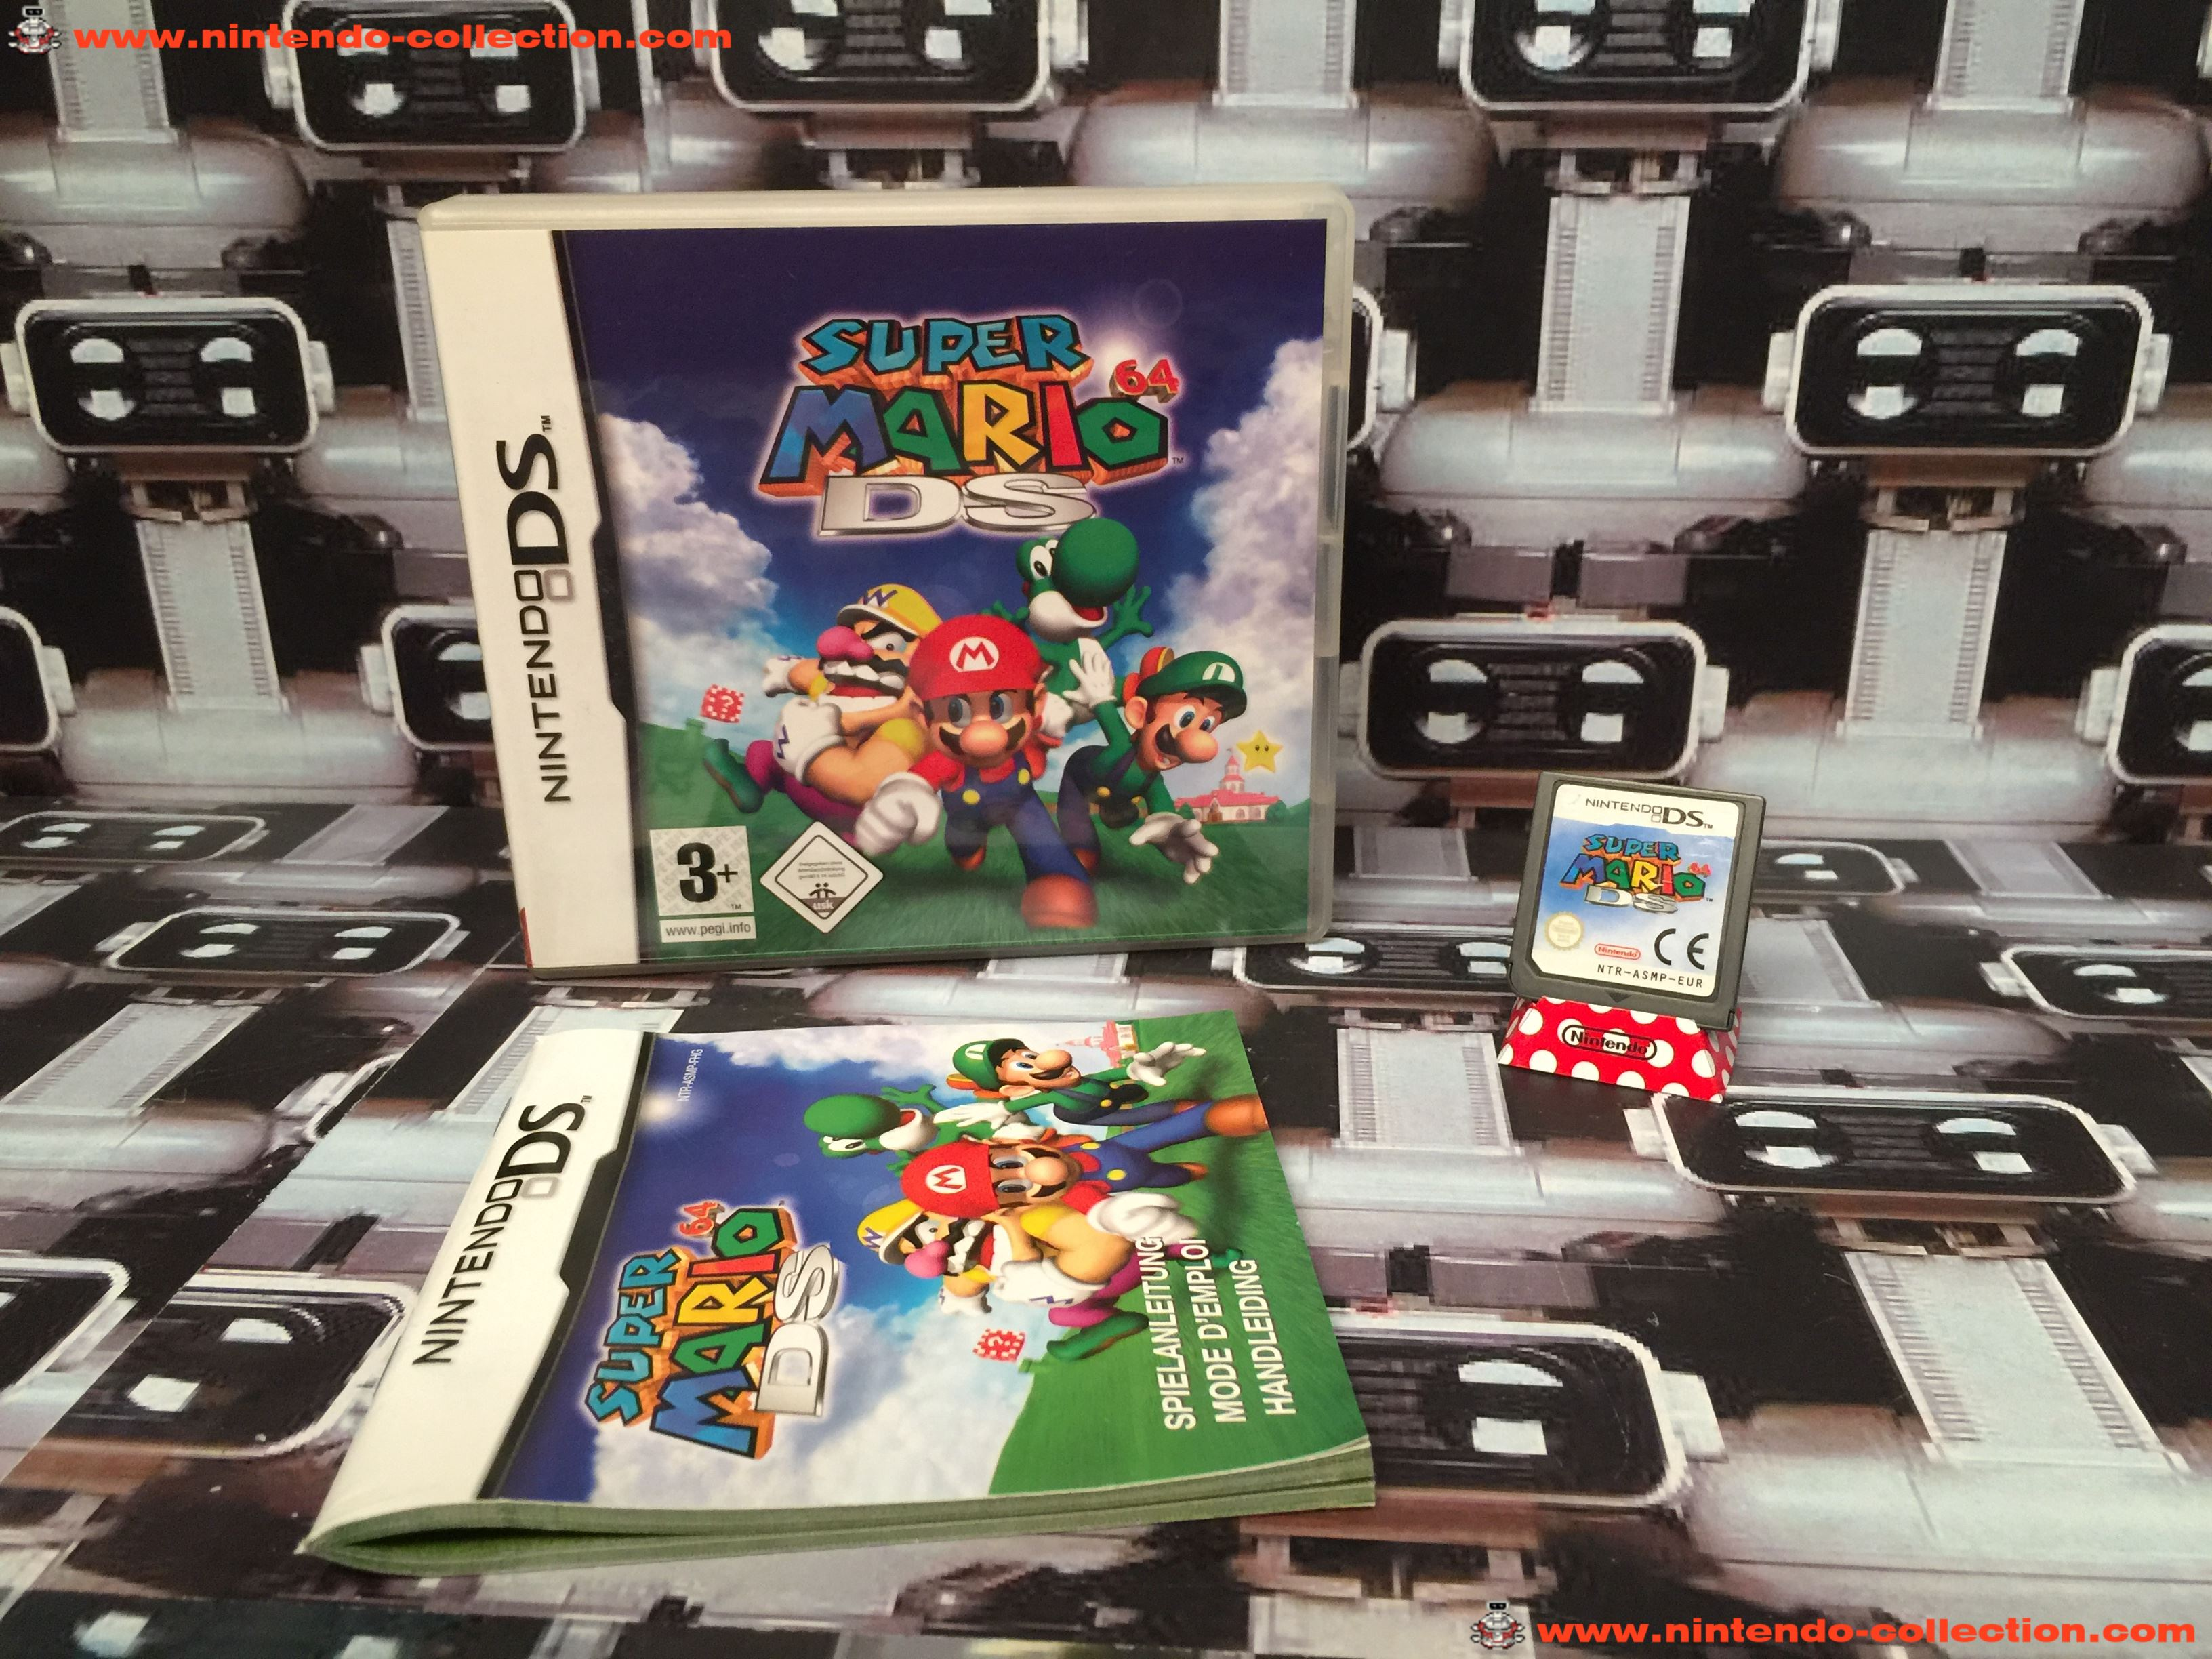 www.nintendo-collection.com - Nintendo DS Jeux Game Super Mario 64 DS Euro